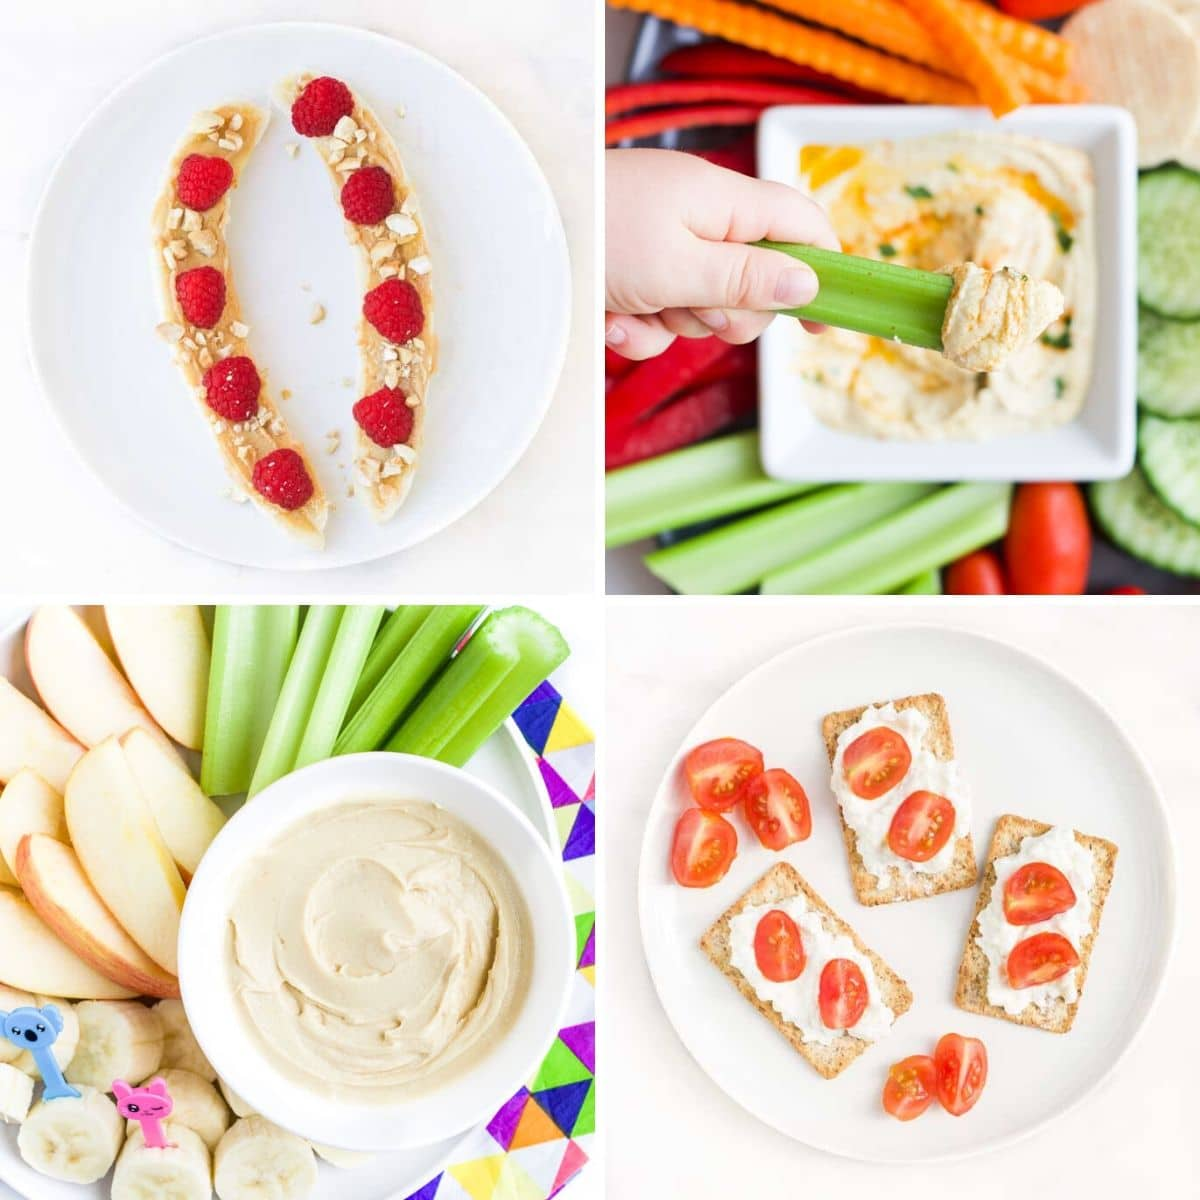 Four Healthy Snack Ideas for KIds